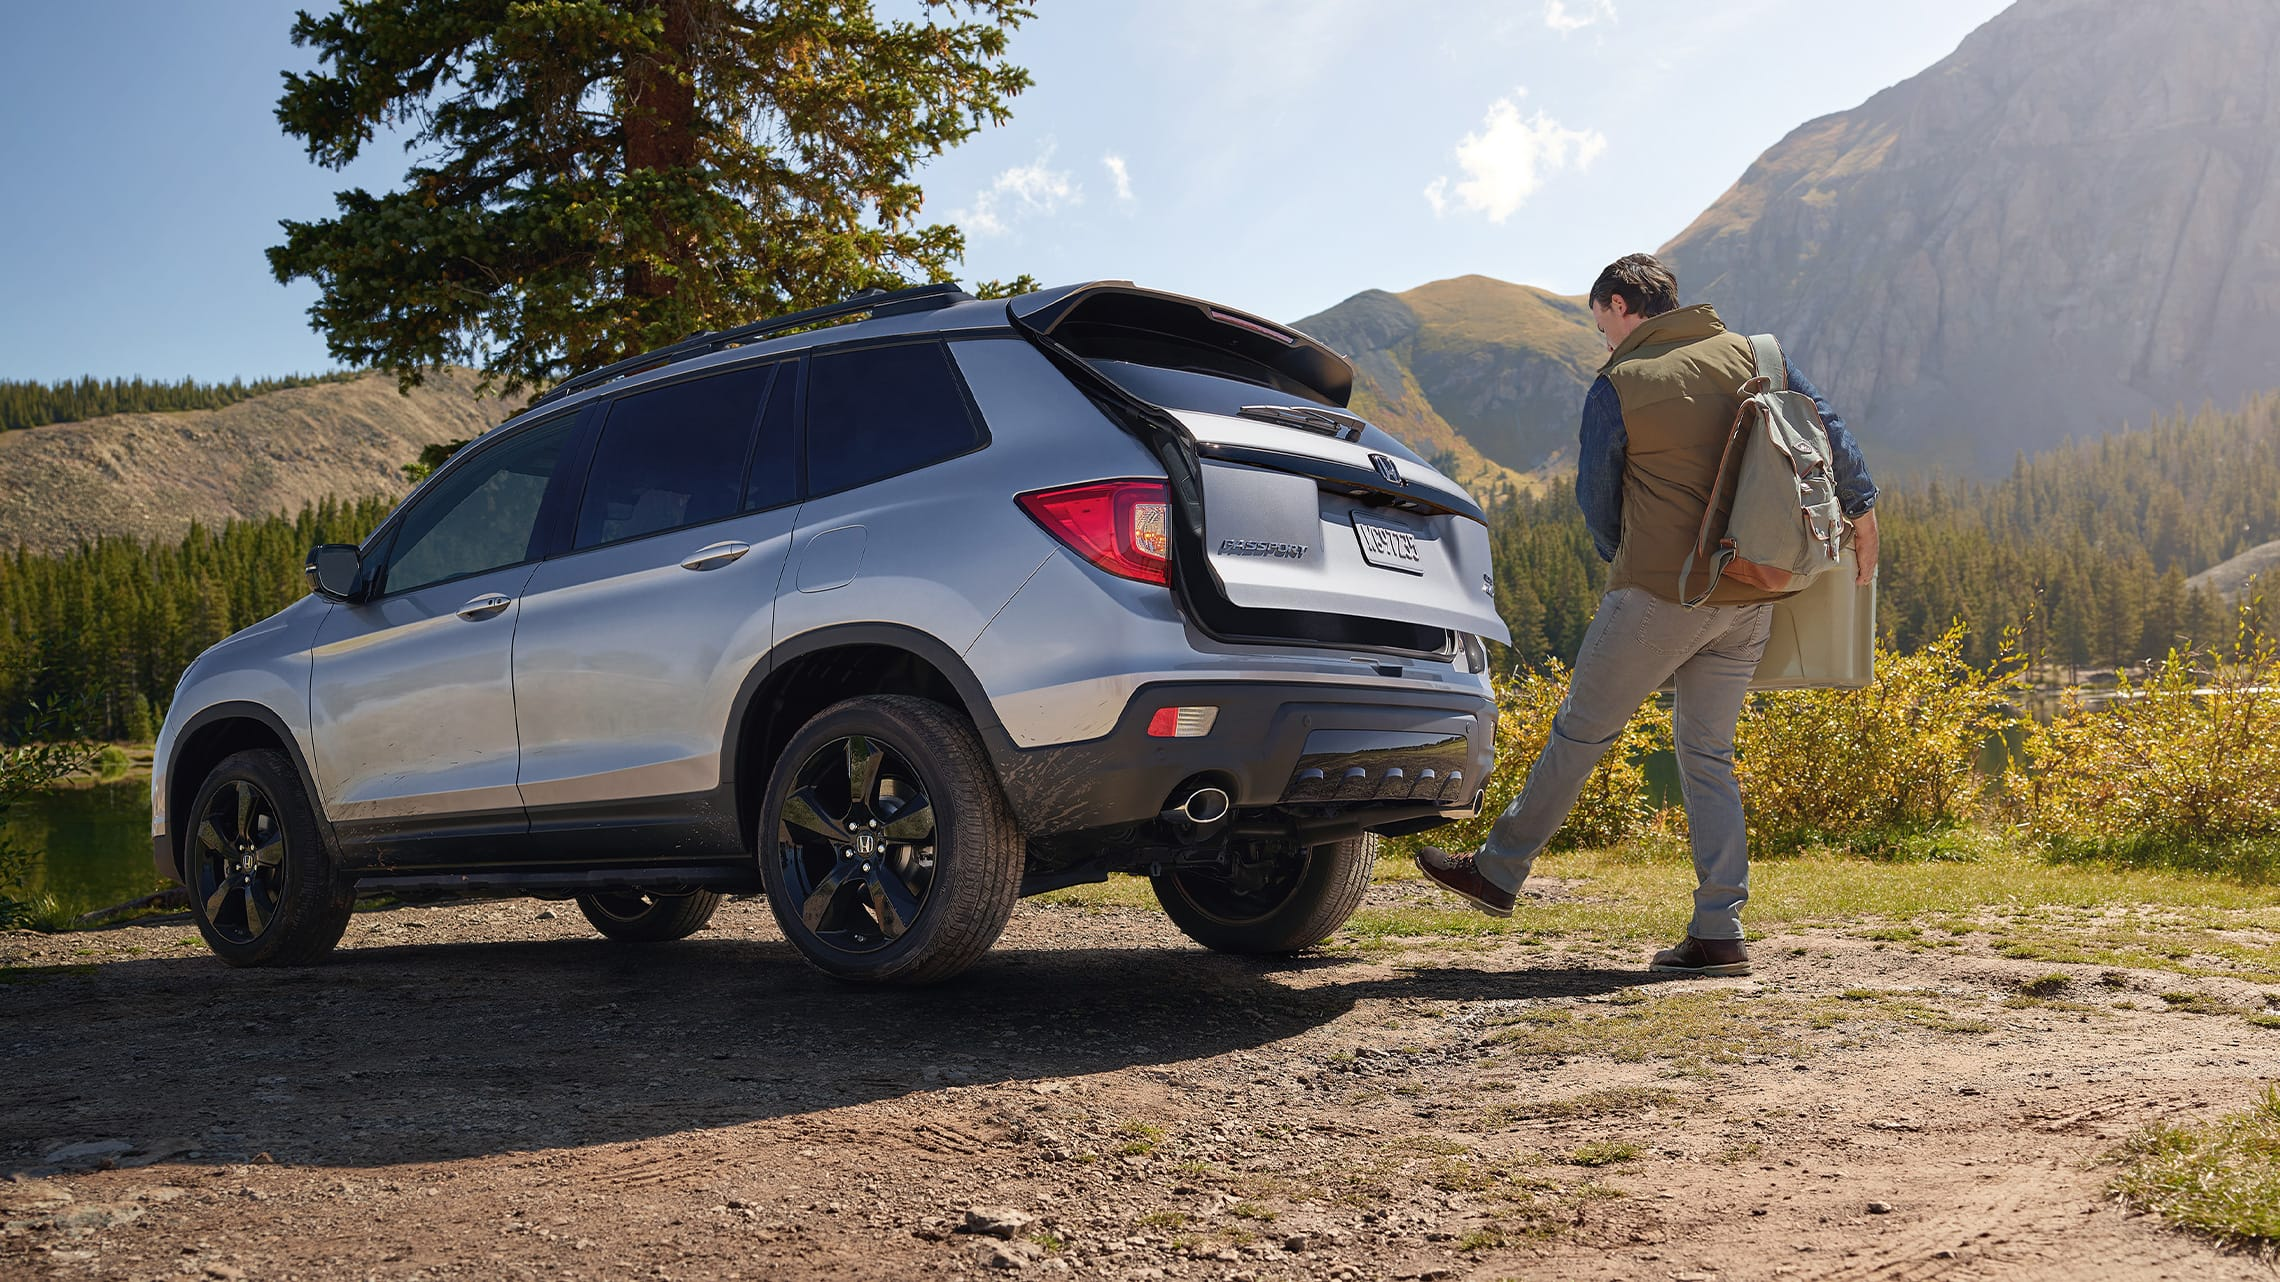 Driver-side rear 3/4 view of 2020 Honda Passport Elite in Lunar Silver Metallic, parked at campsite and demonstrating the hands-free access power tailgate feature.